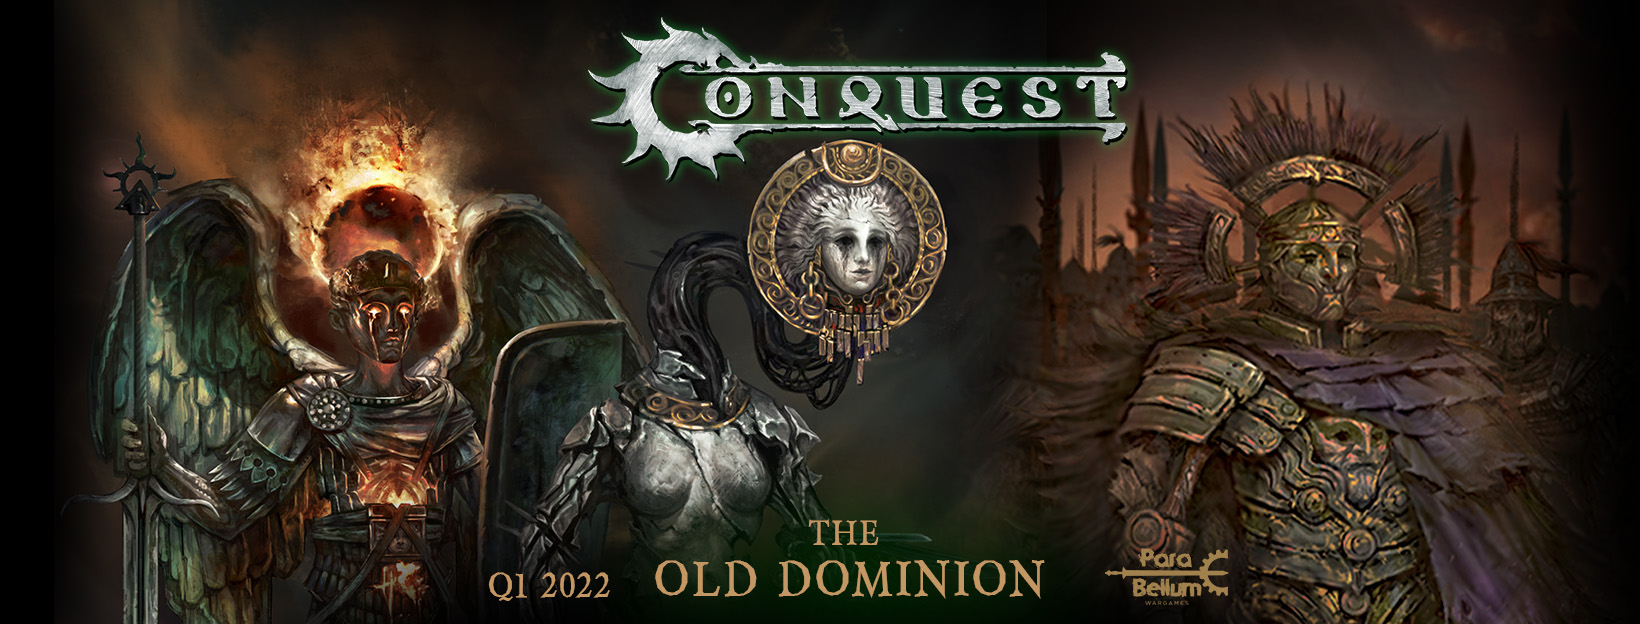 The Old Dominion - Conquest